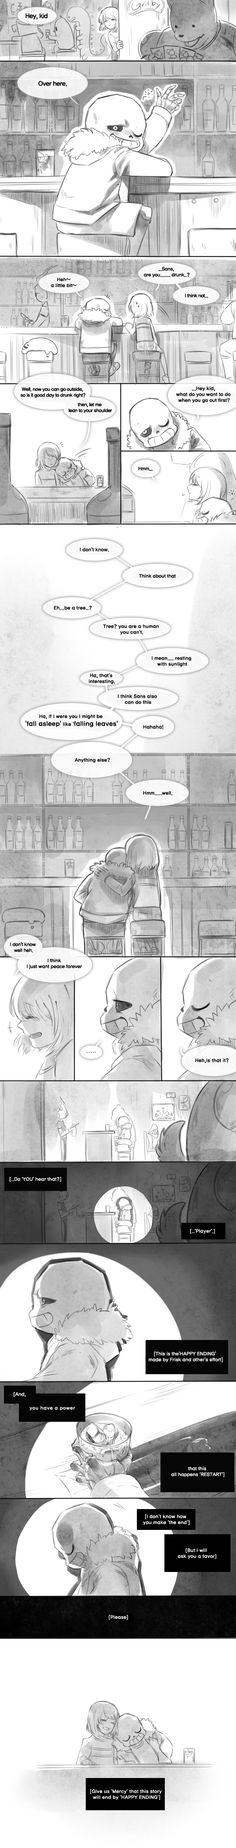 Sans and Frisk - comic<<< Yo Sans I agree with that and all but like.....you people give Chara and Frisk way too much credit. In a twisted sense, they are just puppets that players express themselves through. It's the player that genocides it or goes the pacifist route. Not Chara or Frisk.